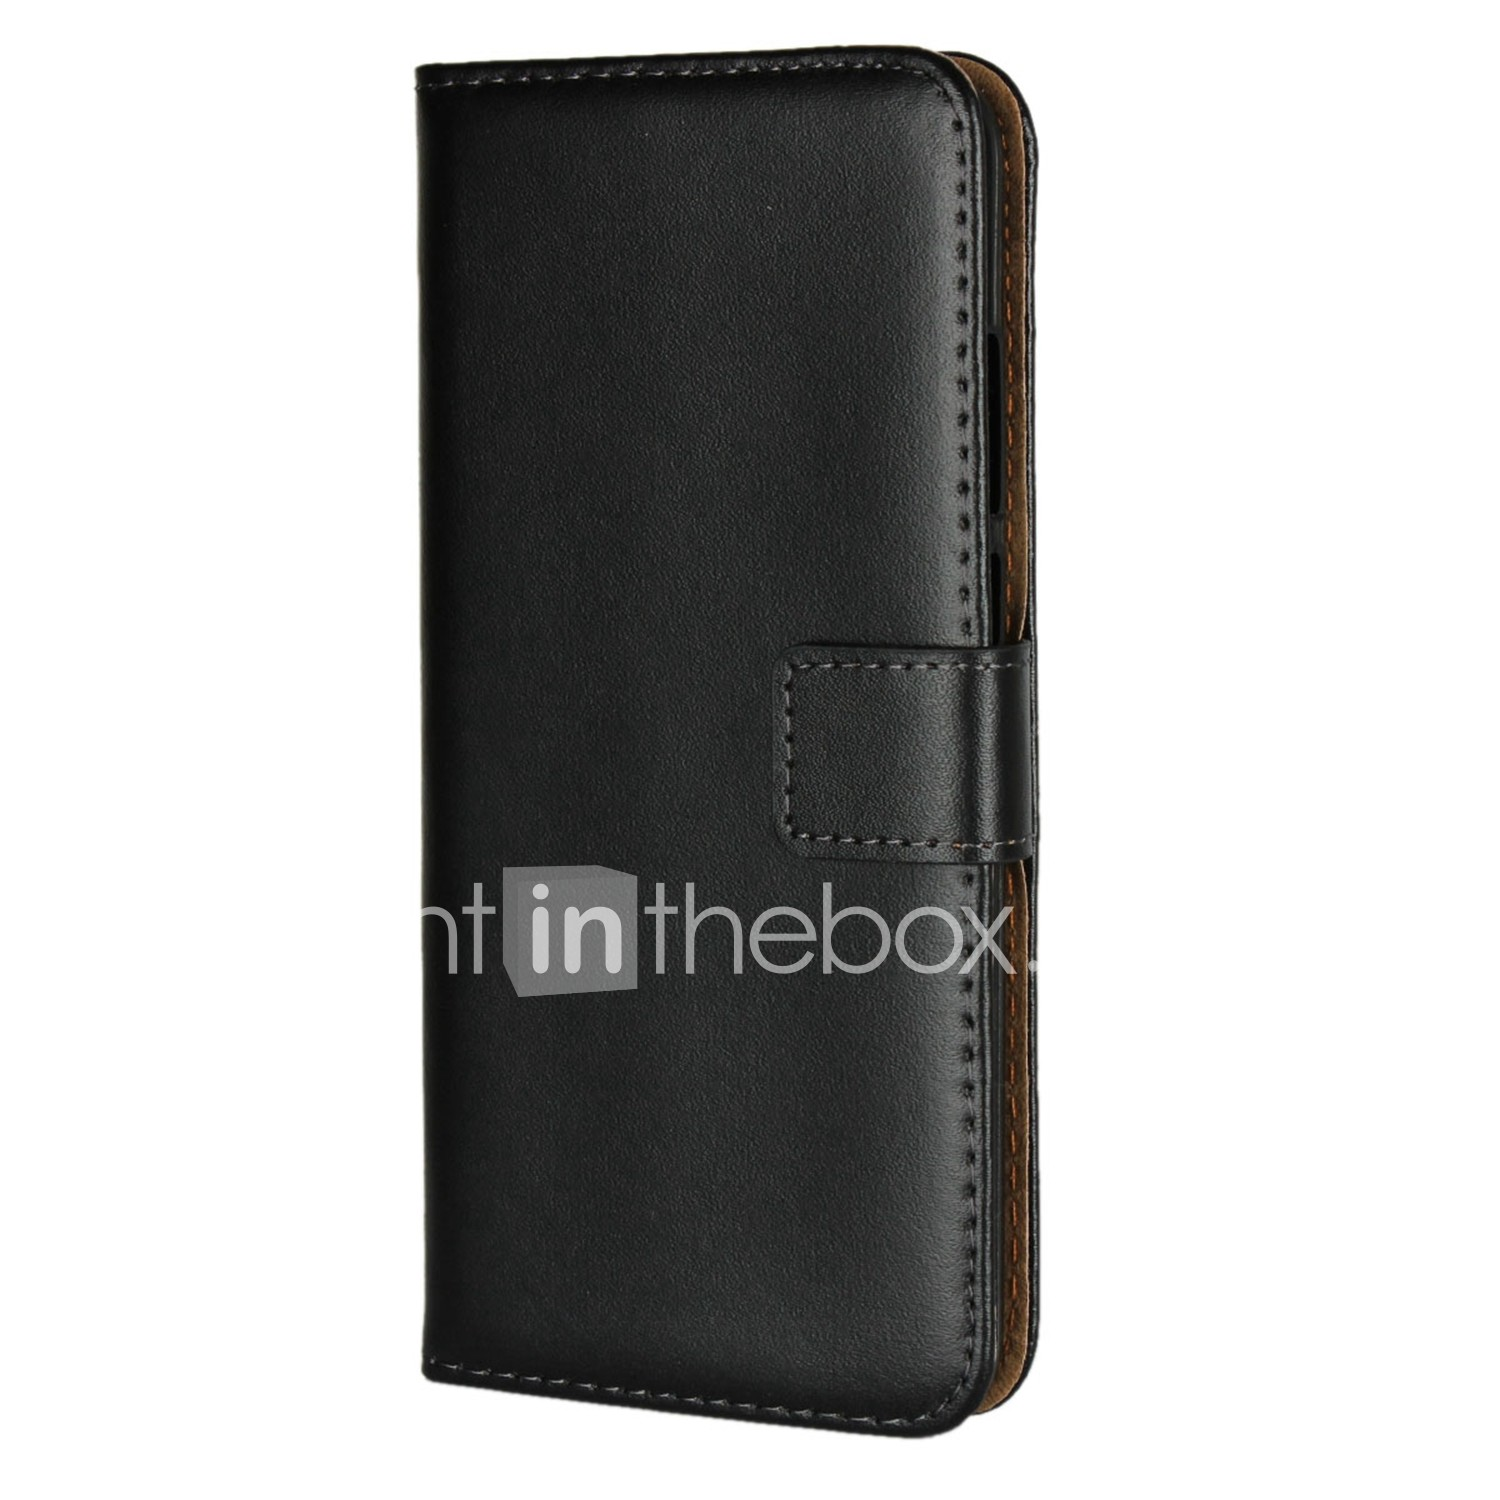 pretty nice 11c5f c785b Case For Huawei P20 / P20 lite Wallet / Card Holder / with Stand Full Body  Cases Solid Colored Hard PU Leather for Huawei P20 / Huawei P20 Pro / ...